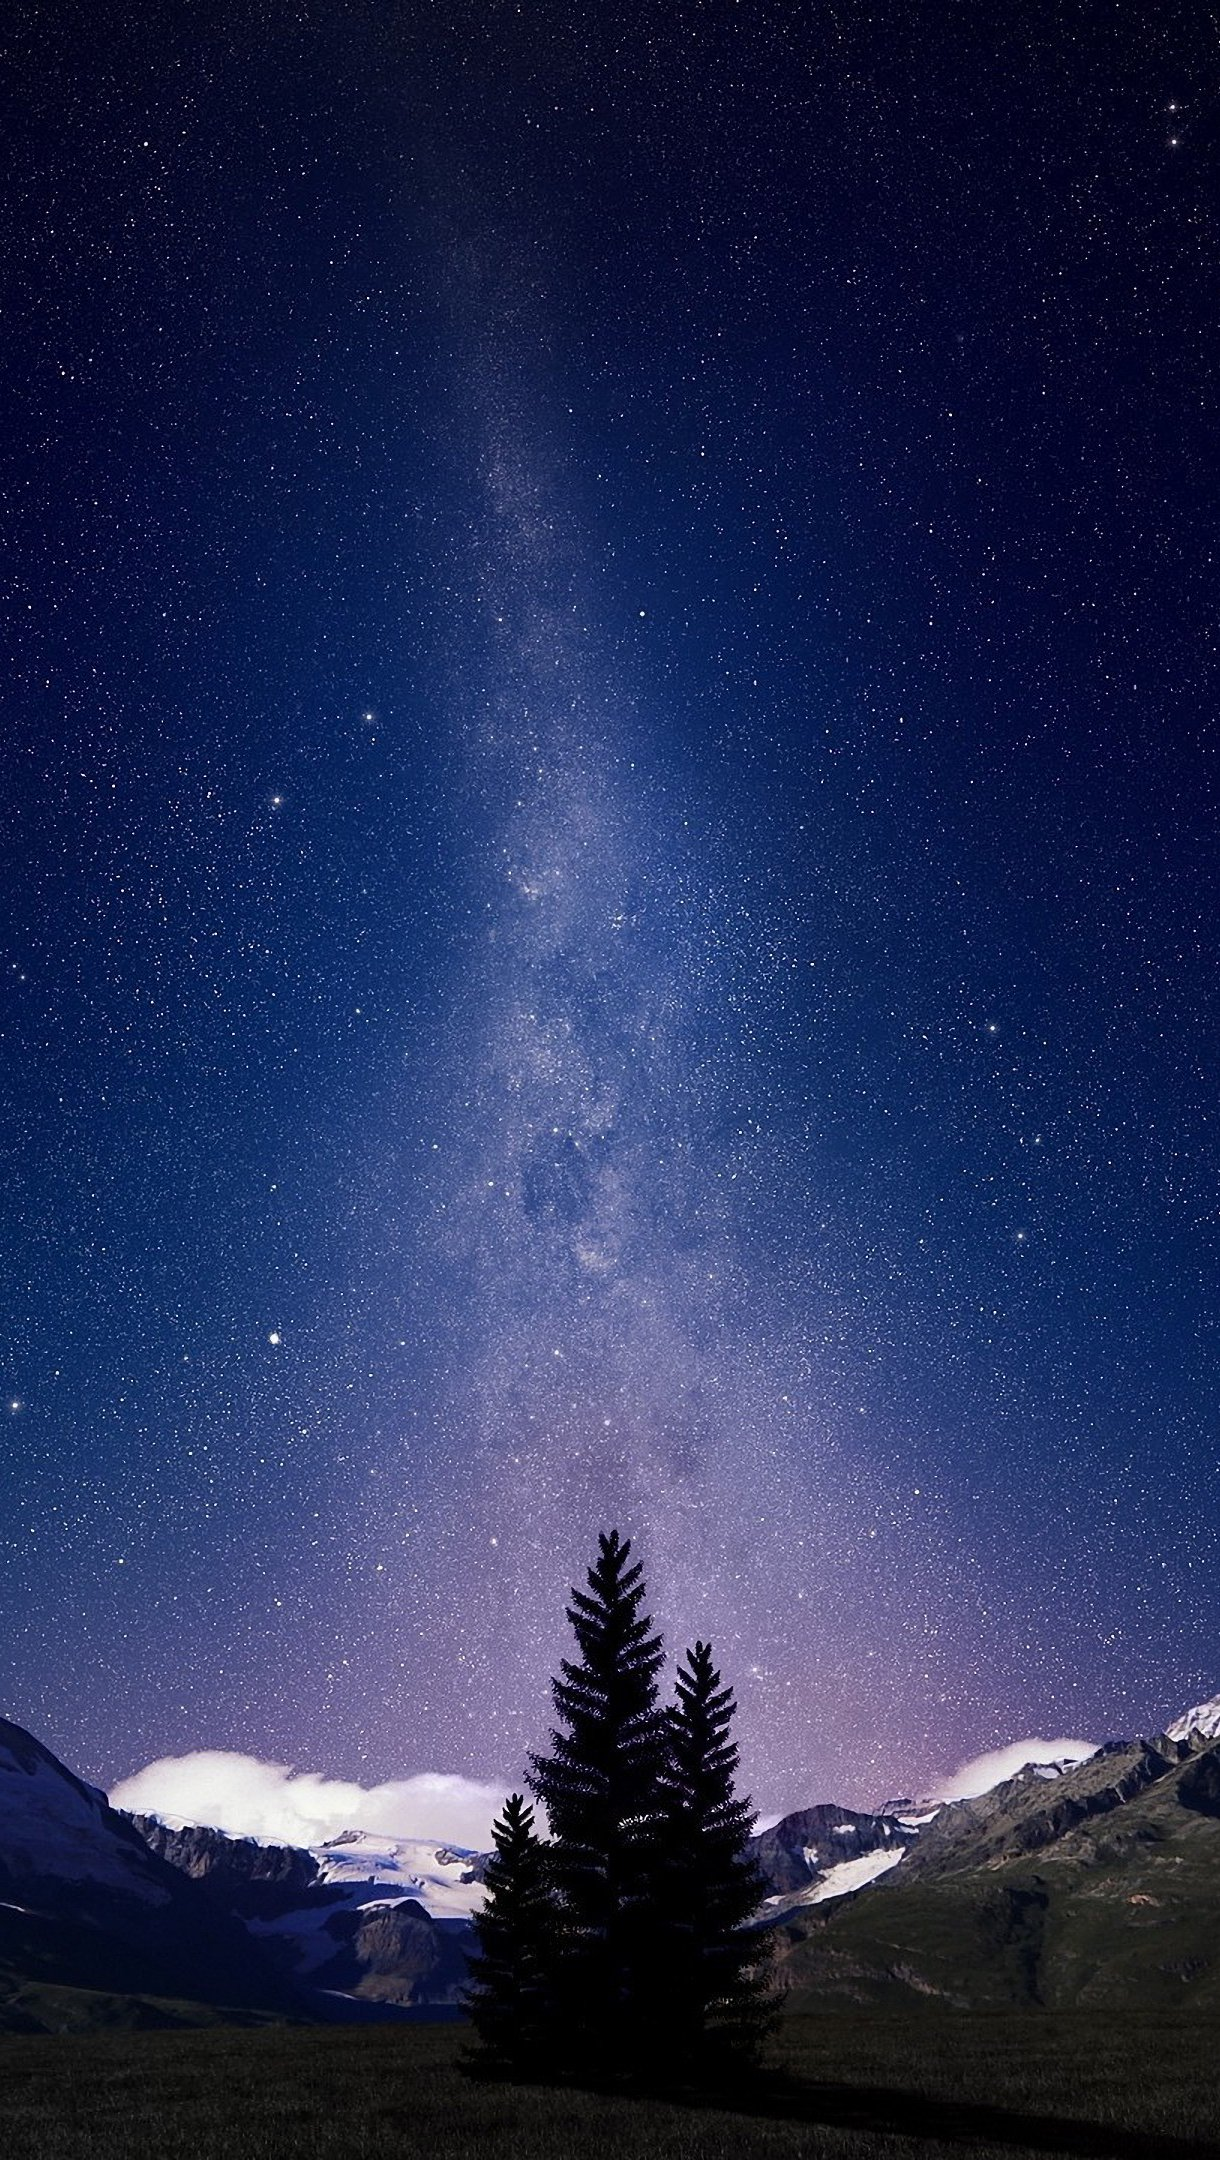 Wallpaper Mountains of night and stars Vertical